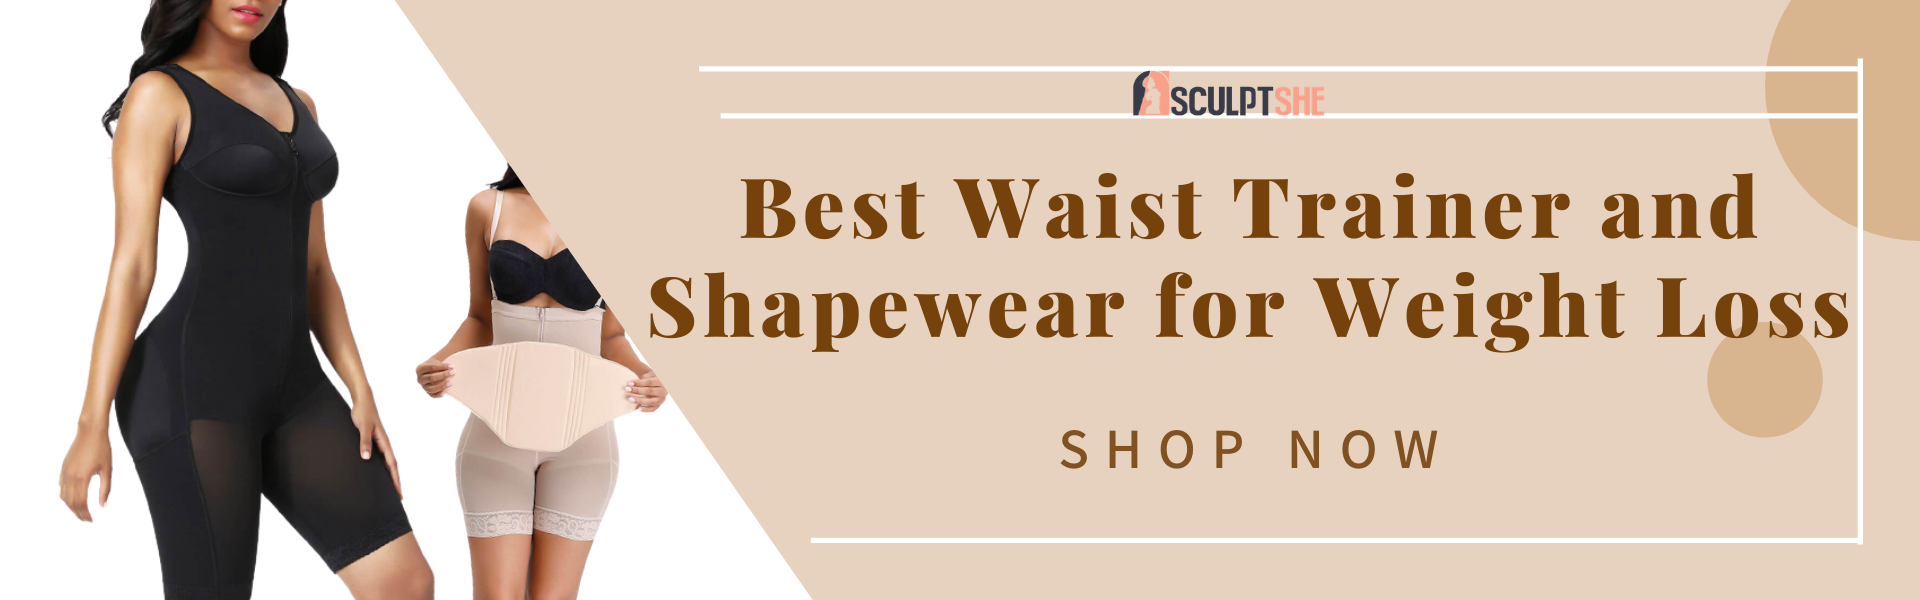 Best Waist Trainer and Shapewear for Weight Loss